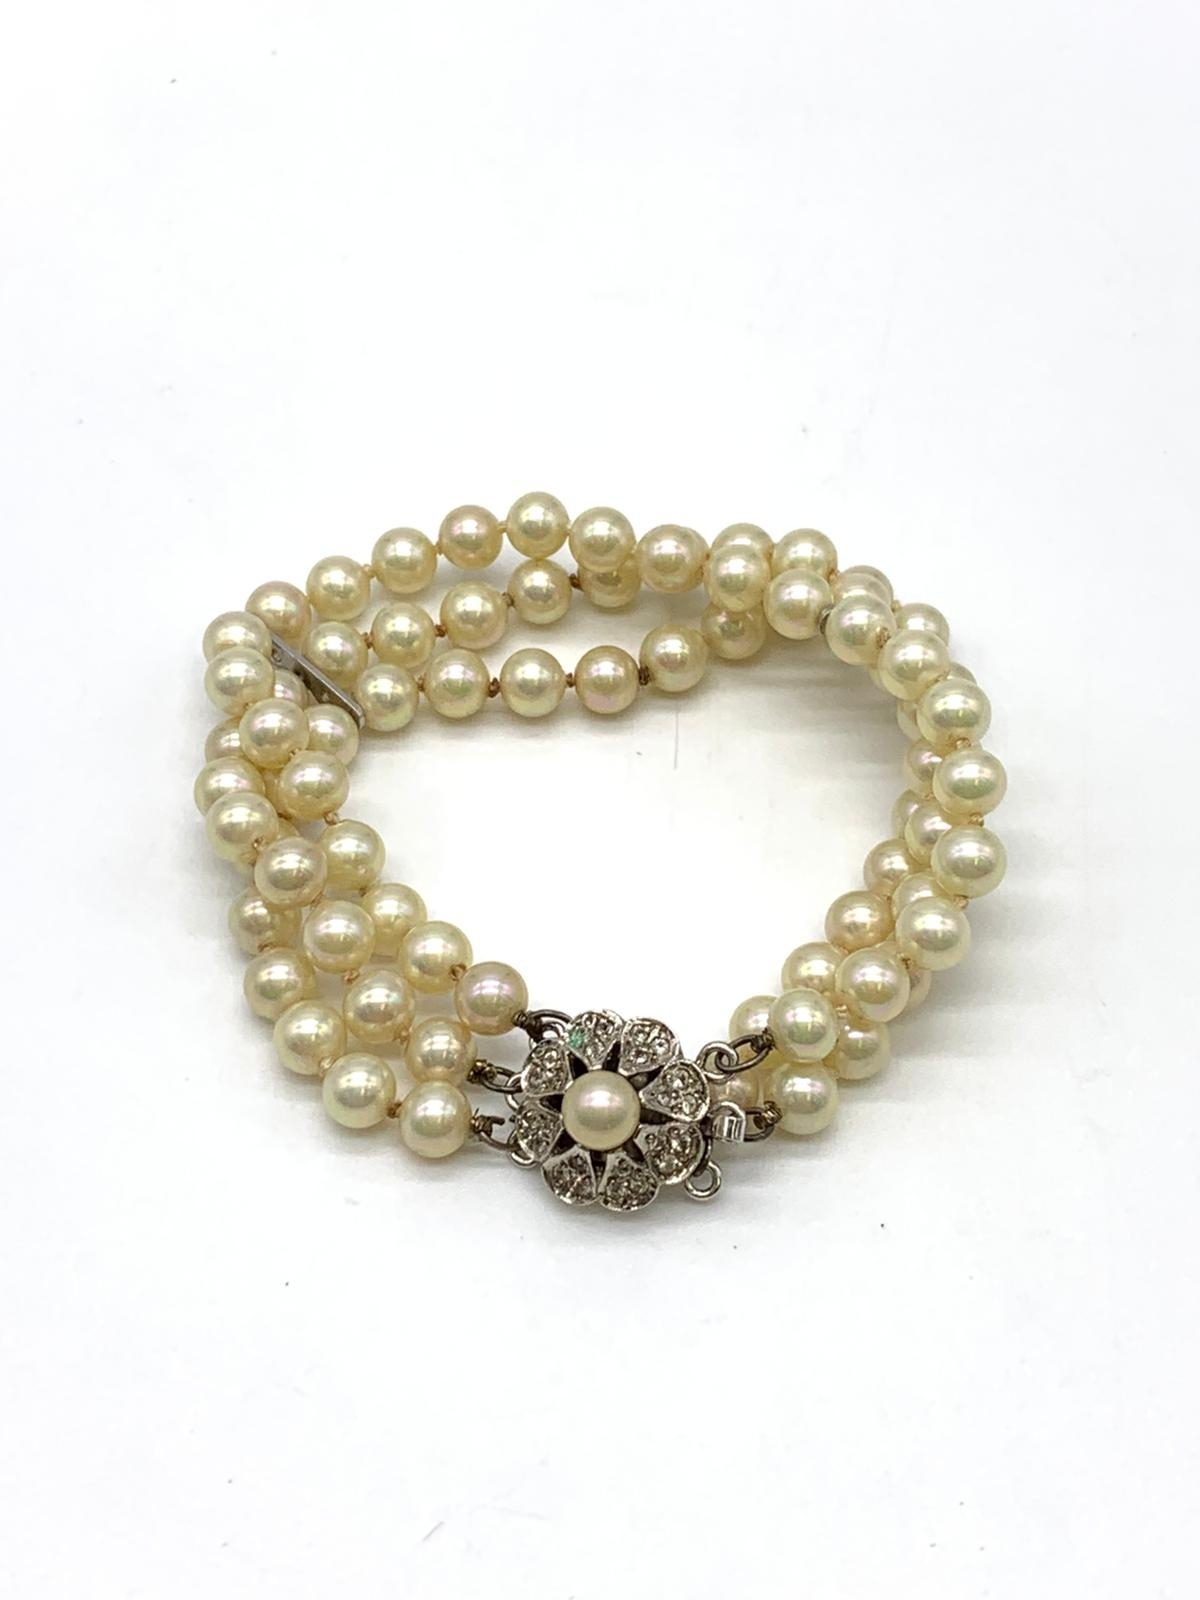 3 Strings Pearl Bracelet with Ornate Catch 16cm